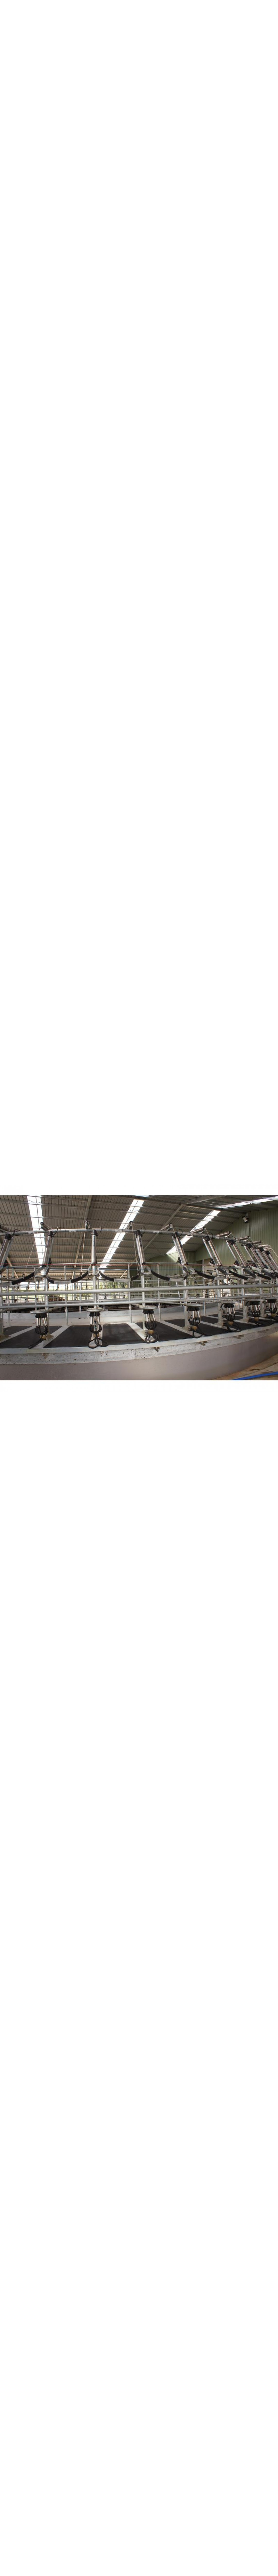 Rotary Milking System - Centrus